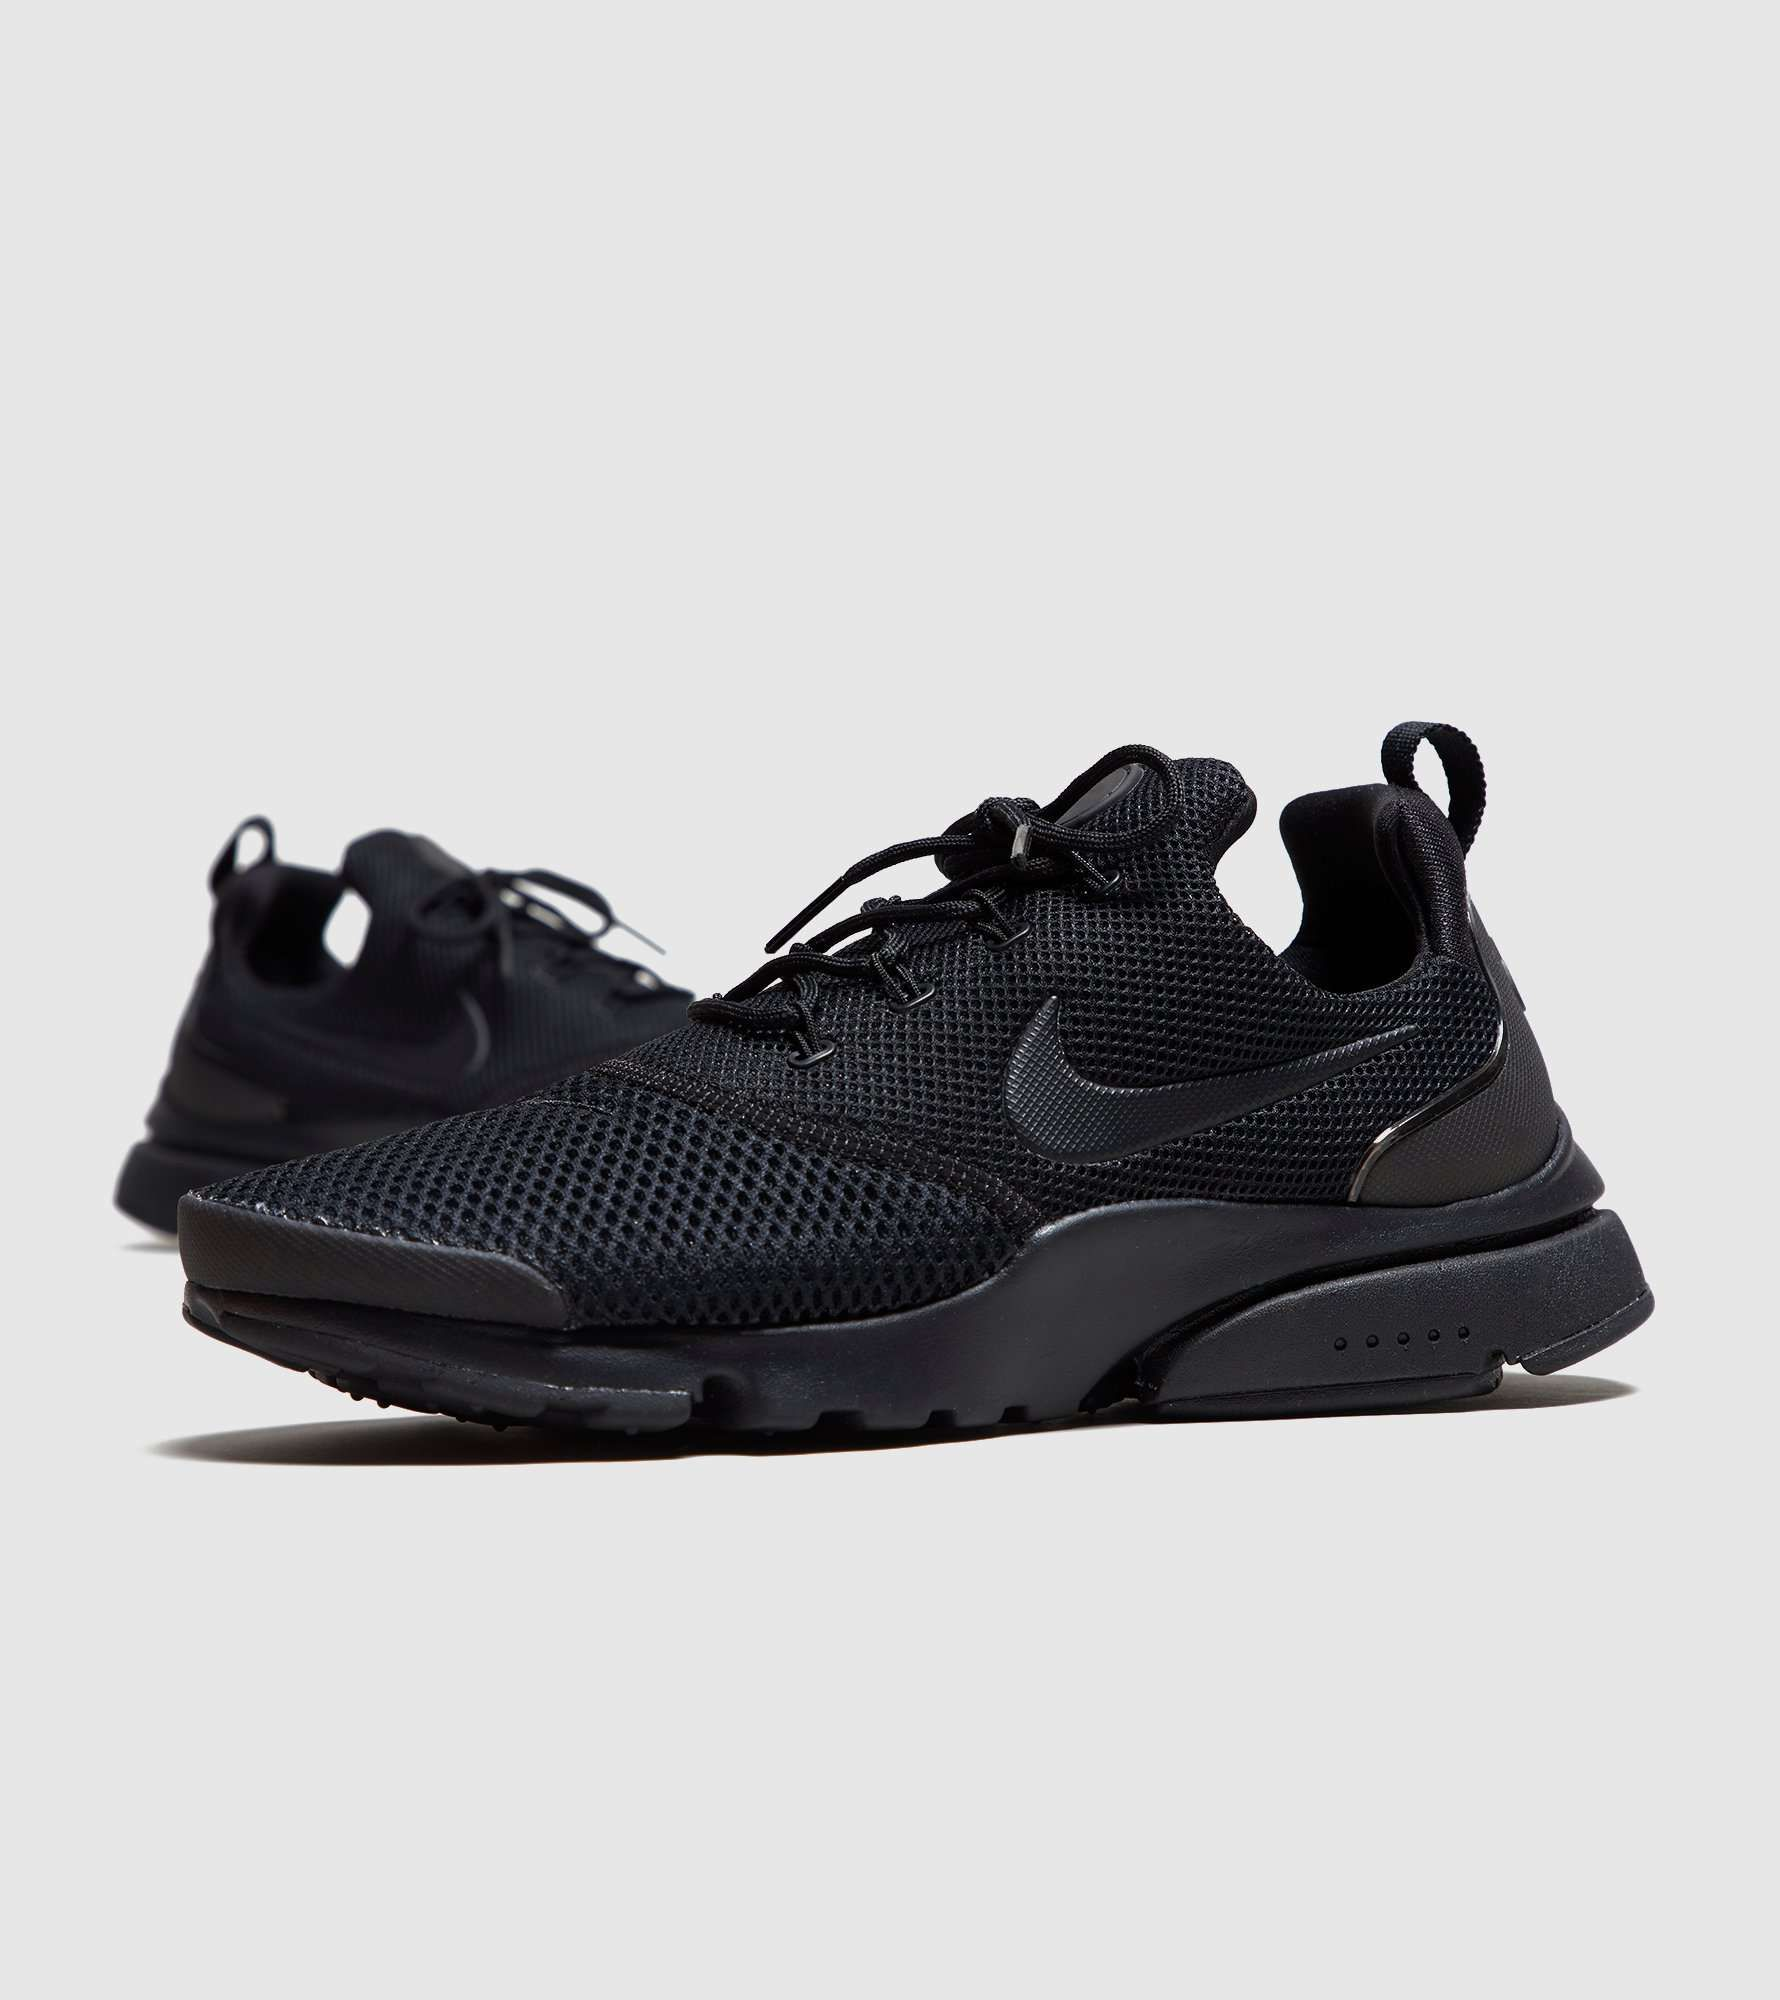 6f6df50cb86b Black · Nike Air Presto Fly Women s - find out more on our site. Find the  freshest